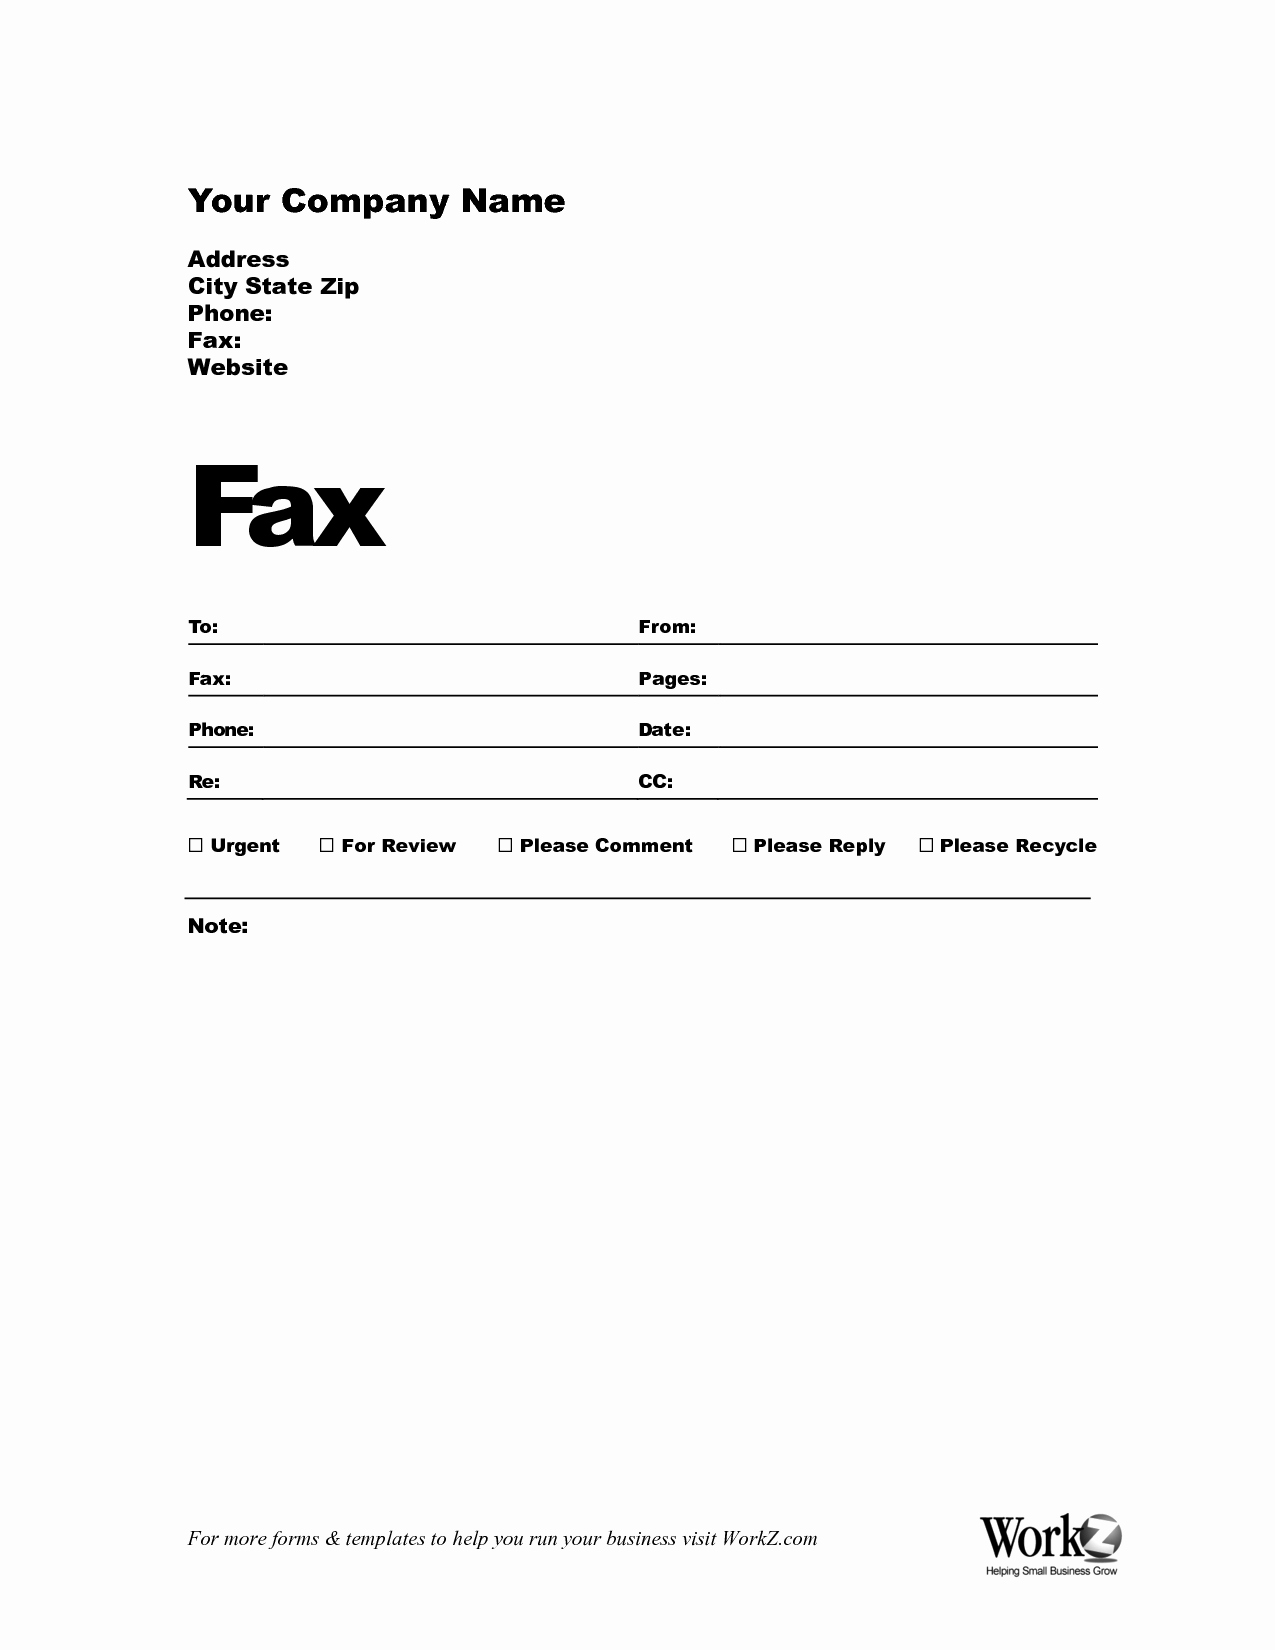 Sample Of Fax Cover Letter Best Of Free Fax Cover Sheet Template Bamboodownunder